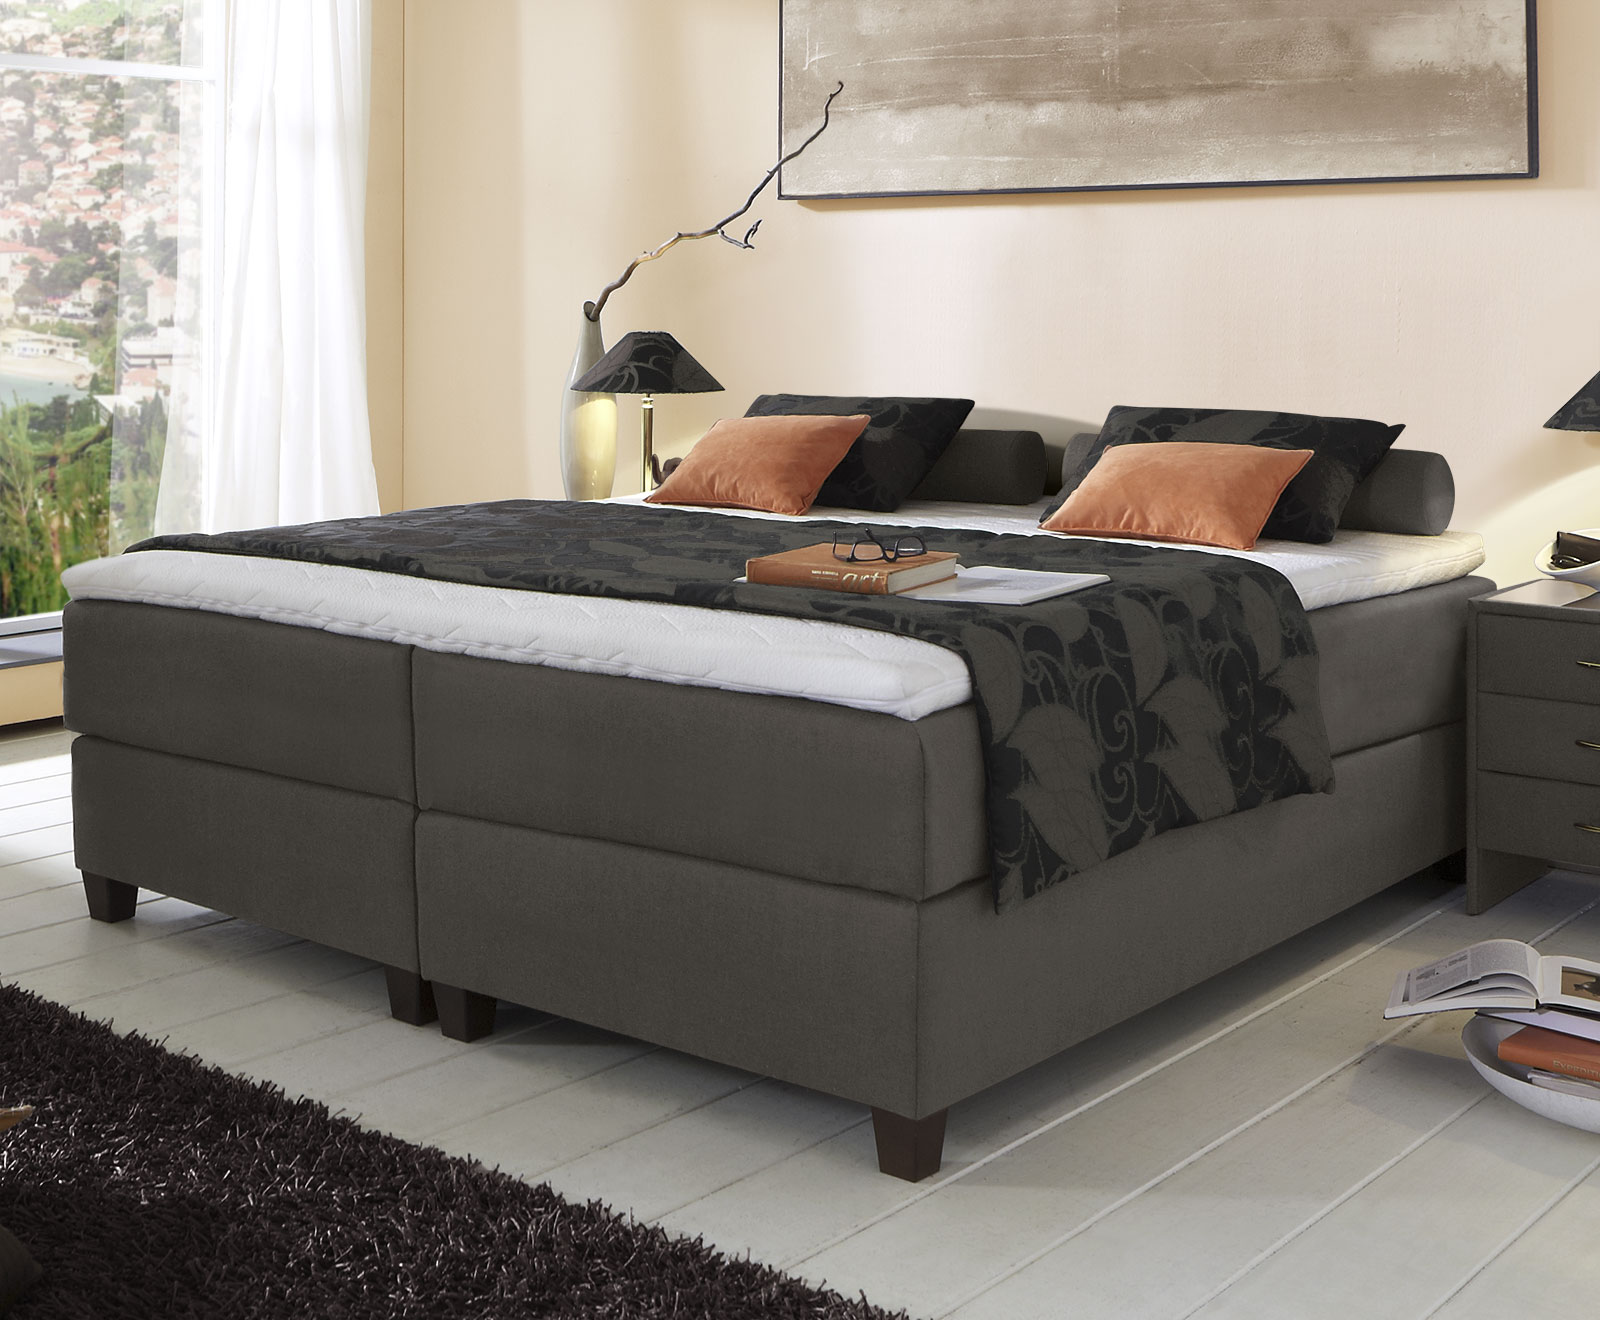 boxspring betten ohne kopfteil boxspring bett ohne matratze betten house und dekor galerie. Black Bedroom Furniture Sets. Home Design Ideas